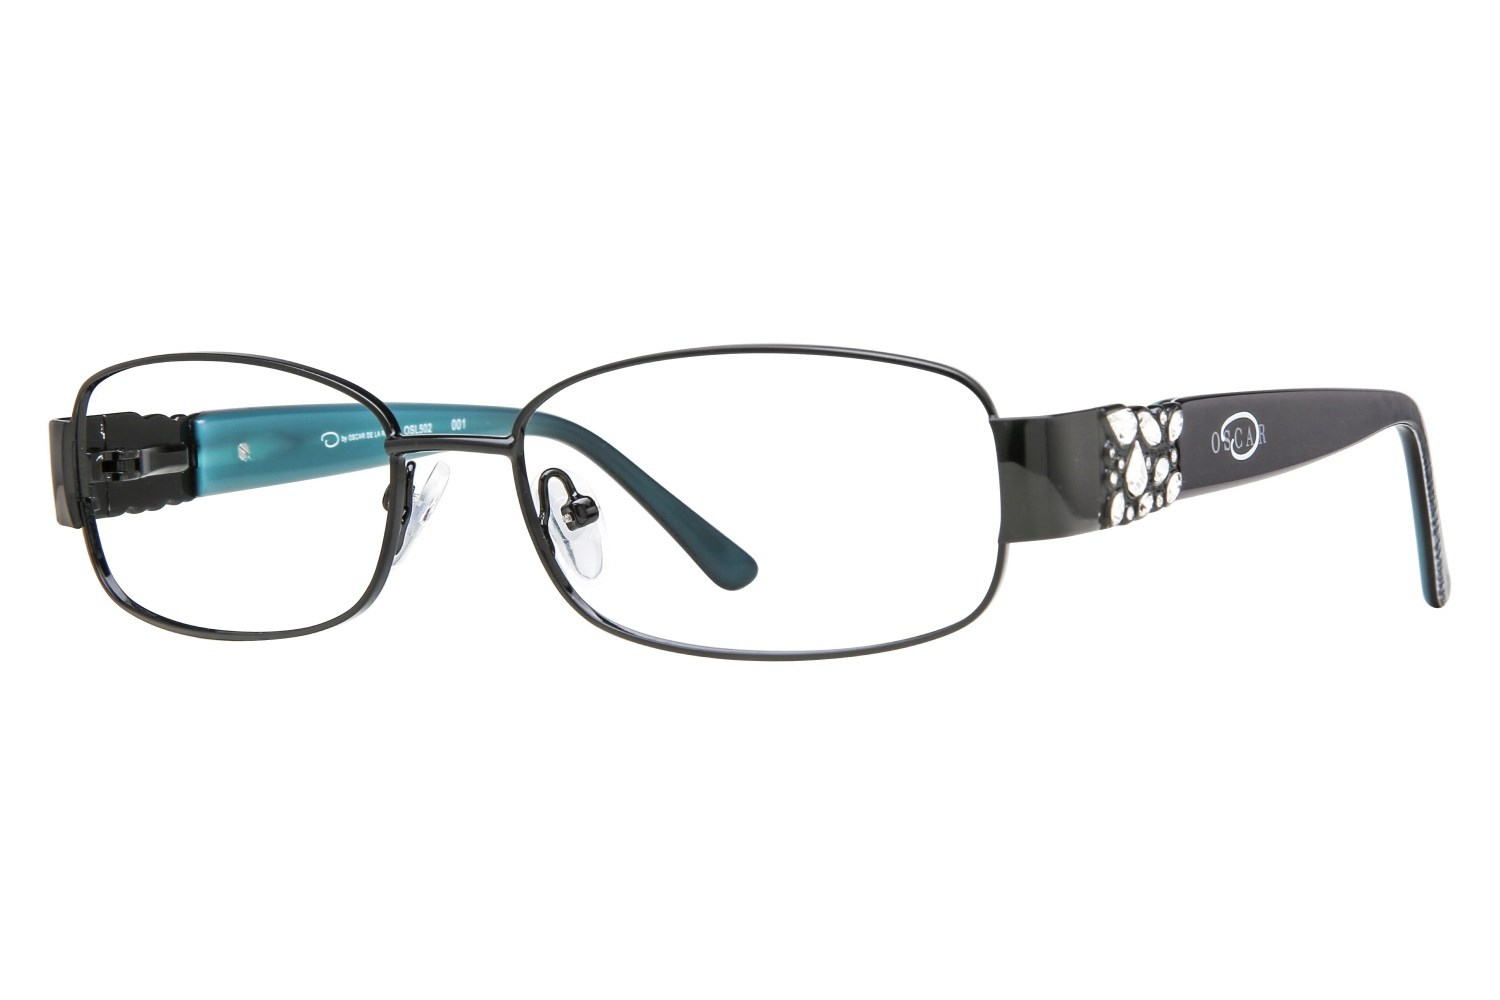 7f51dbda4b Eyeglasses  Brand O By Oscar De La Renta Eyewear glasses and contact ...